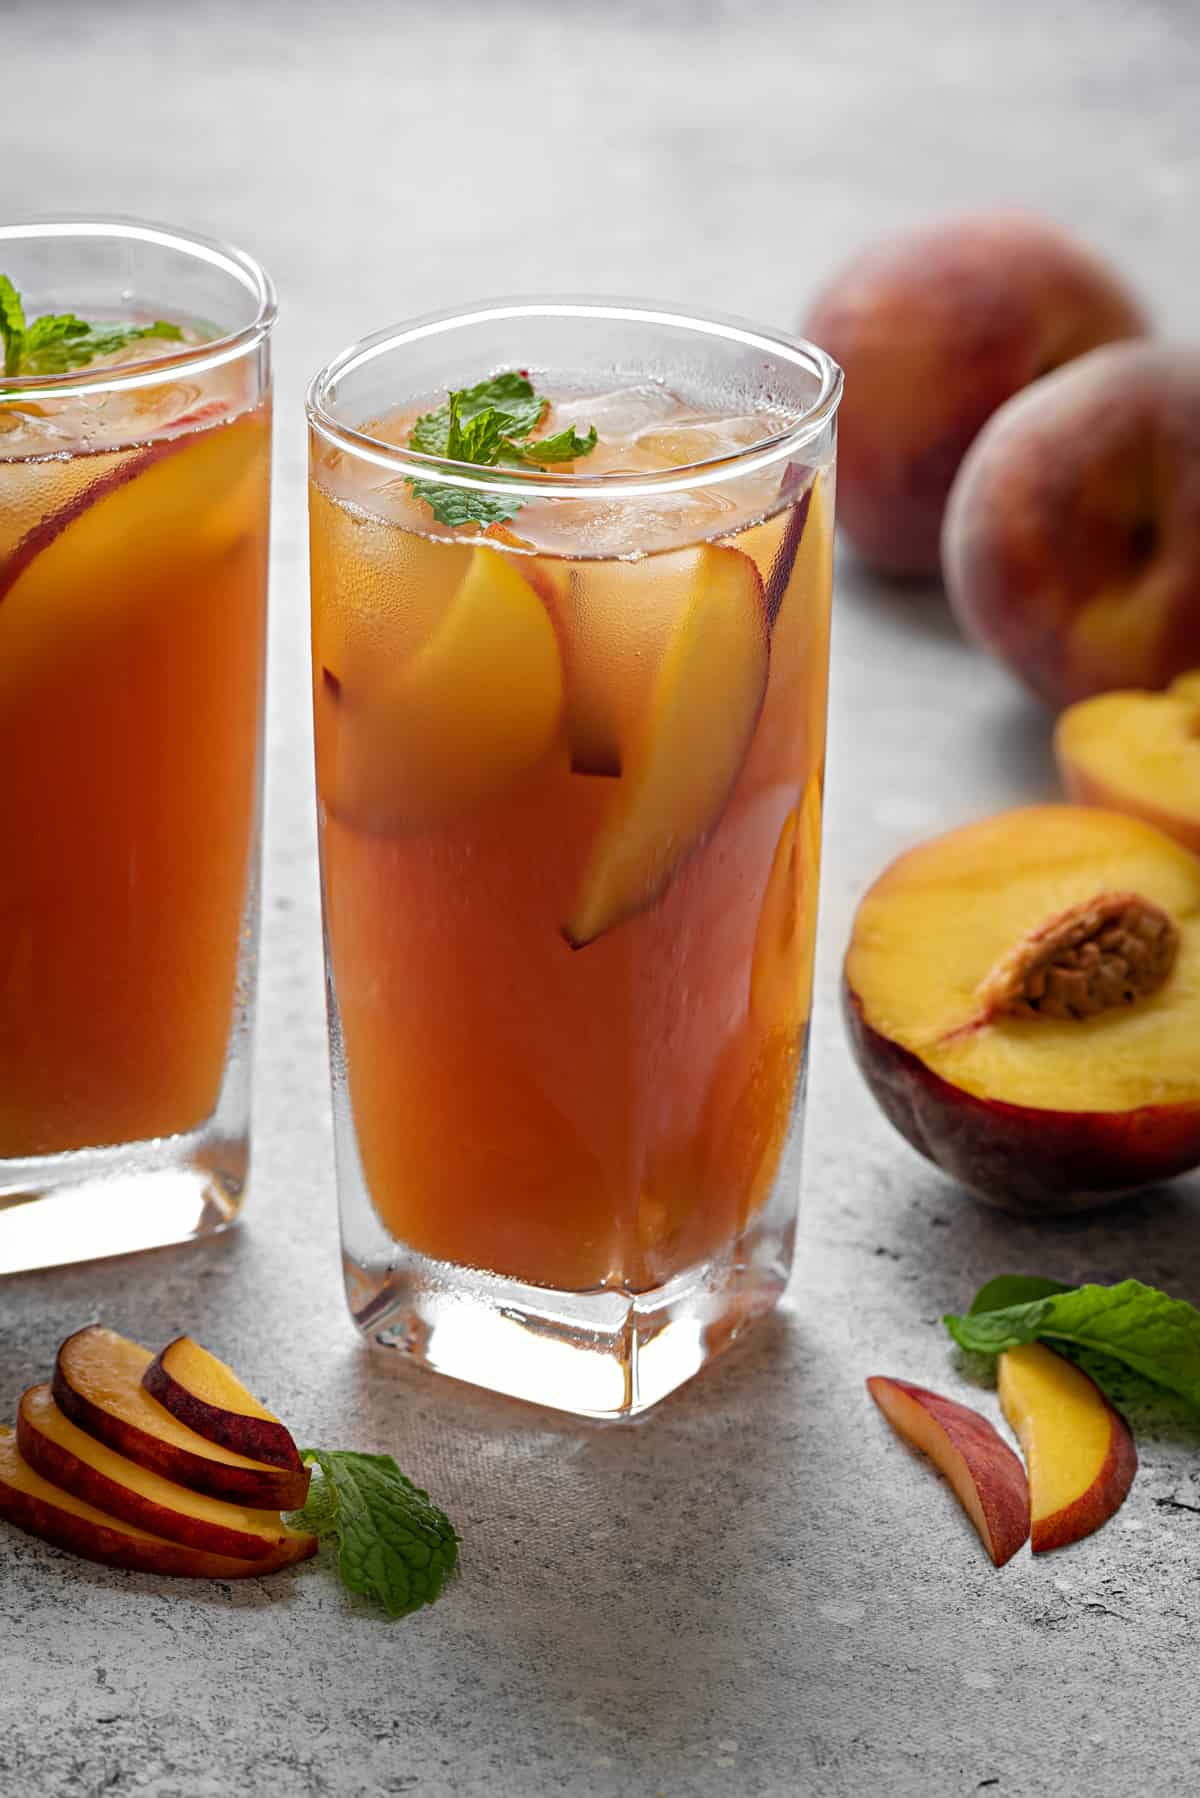 chilled sweet peach tea in two glasses with some sliced and whole peaches at the back